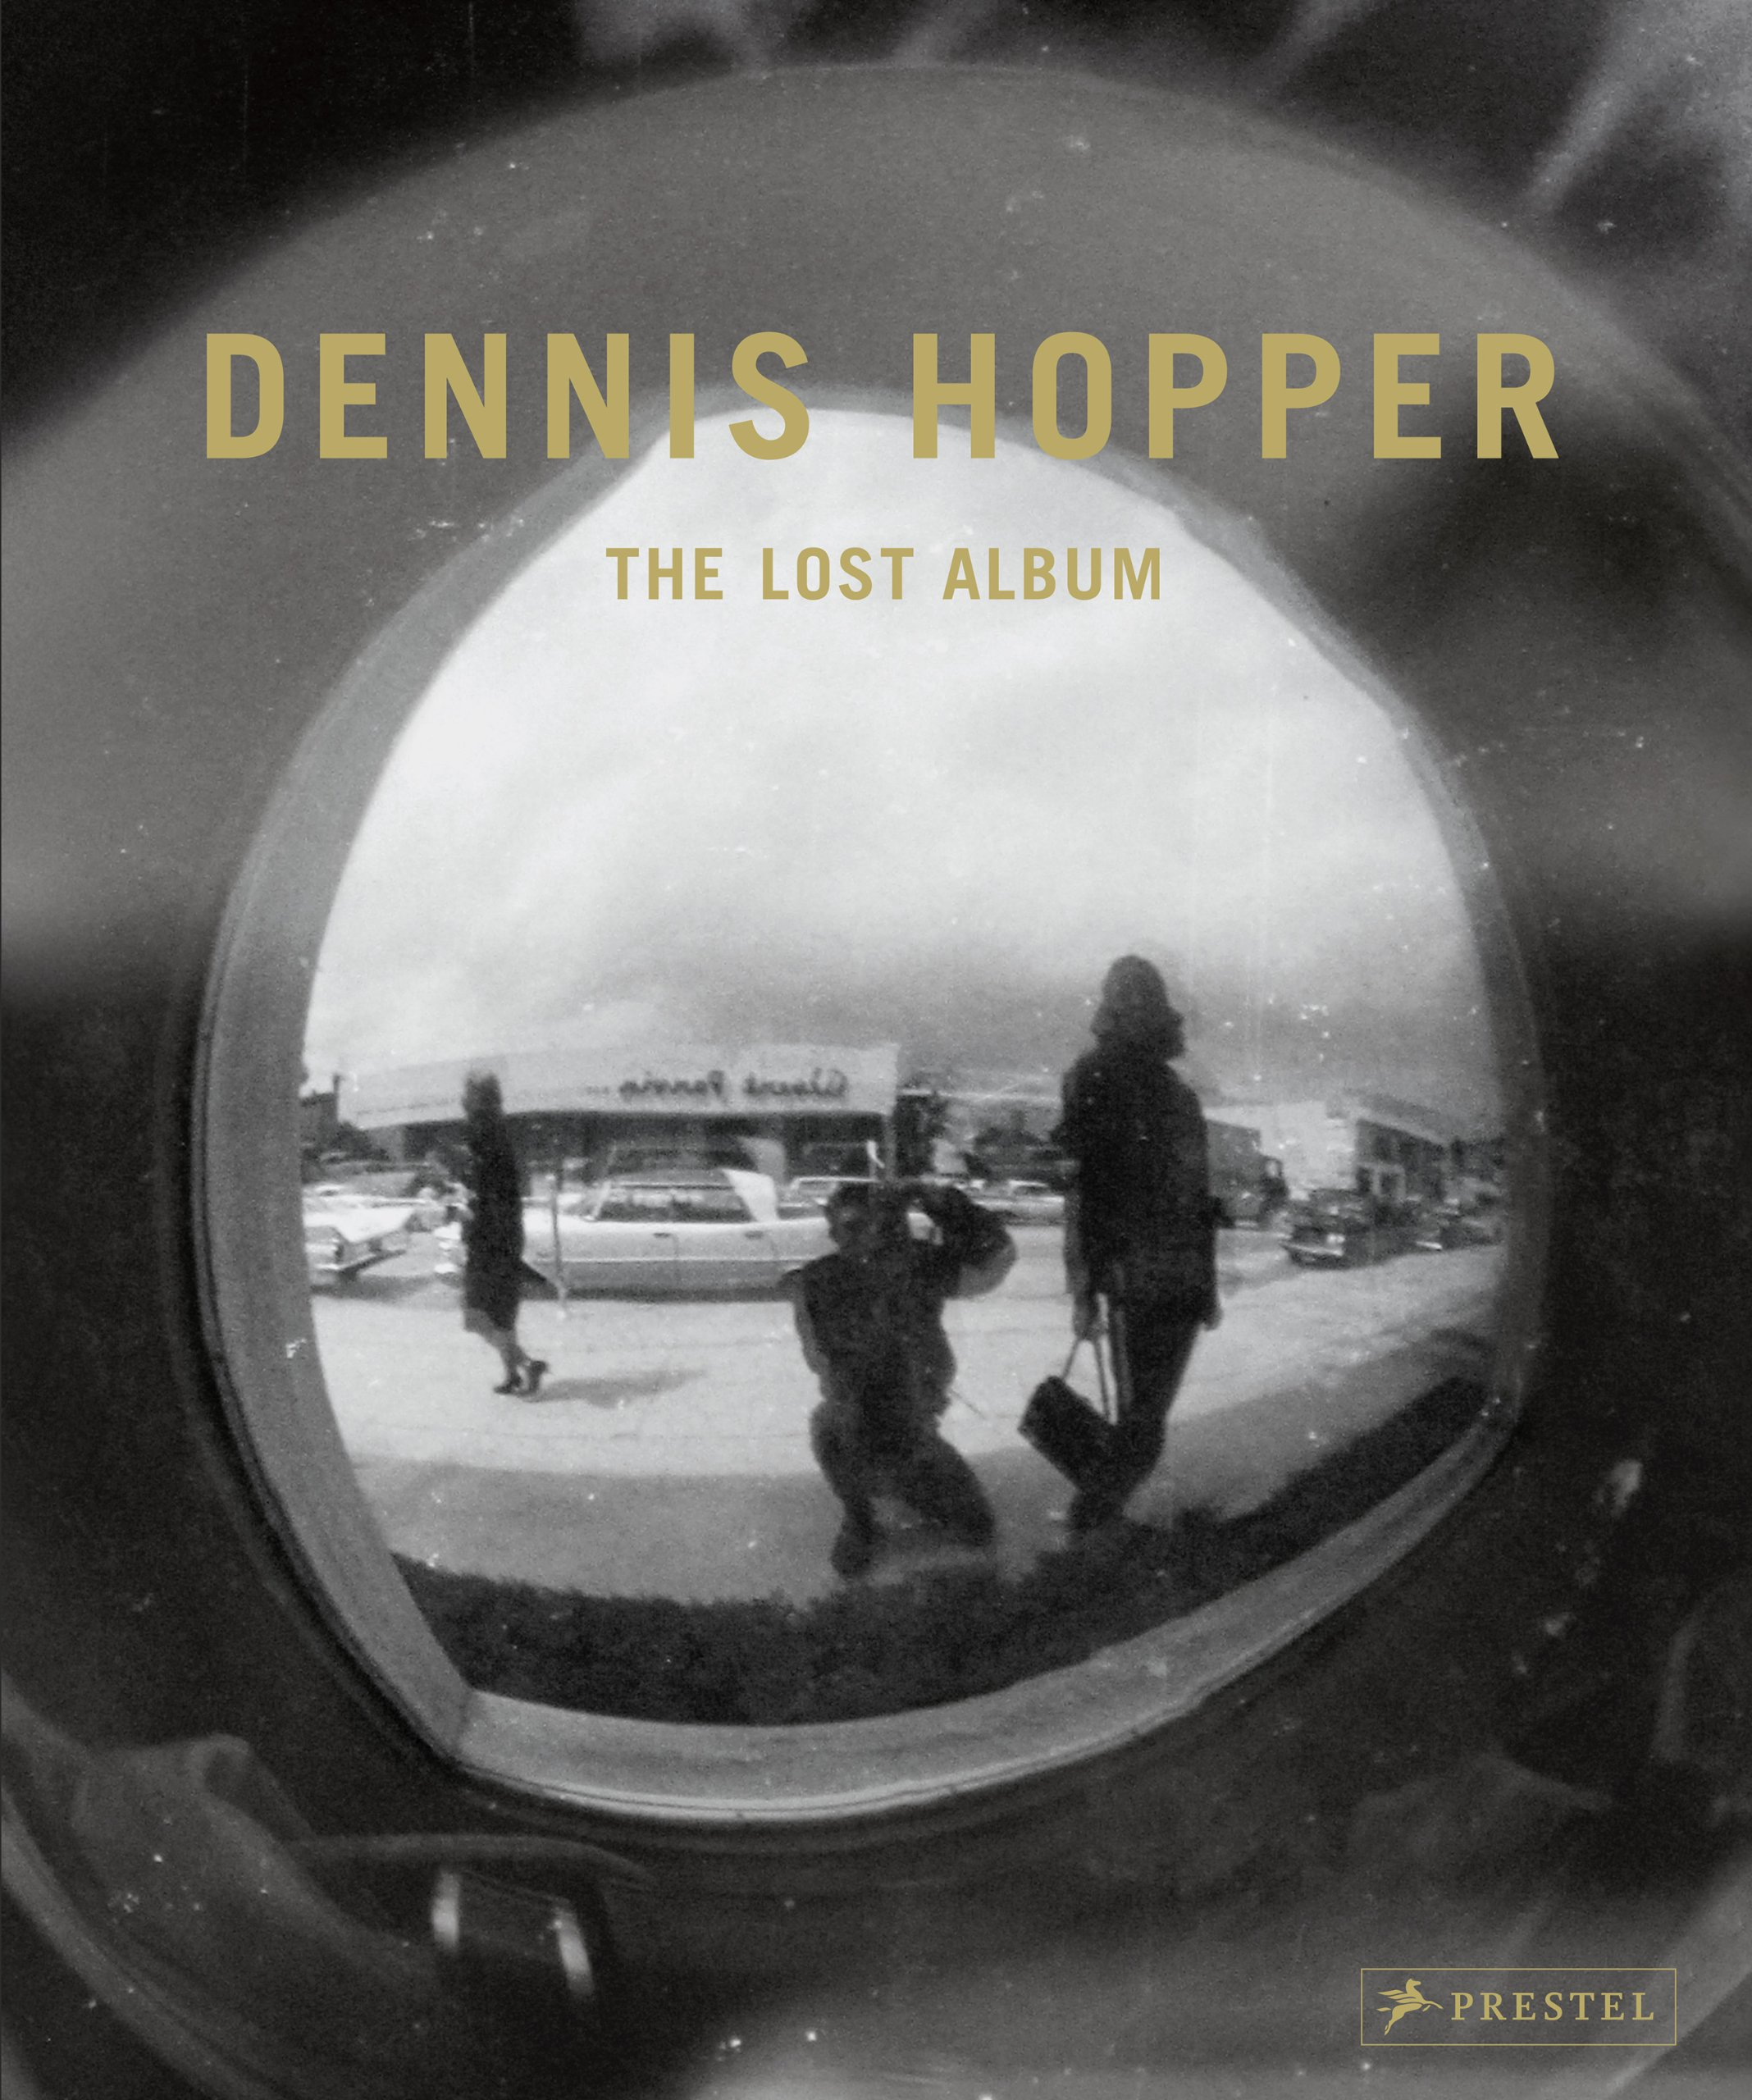 dennis-hopper-the-lost-album-vintage-prints-from-the-sixties-01